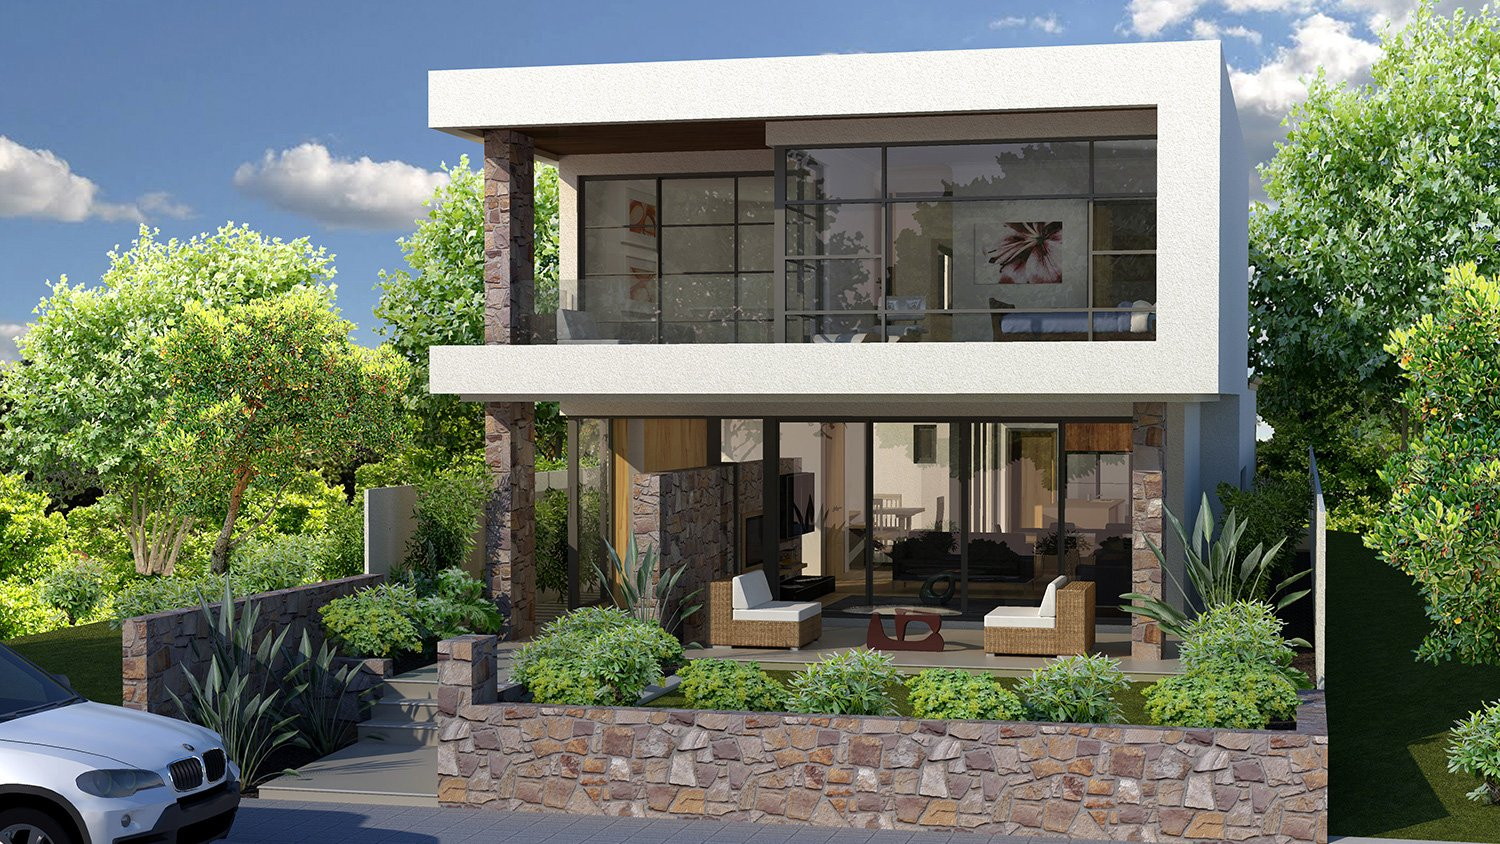 Exceptionnel View Our Floreat Project Image Of A Narrow Lot Homes Perth. Design Is  Critical With Narrow Blocks ...